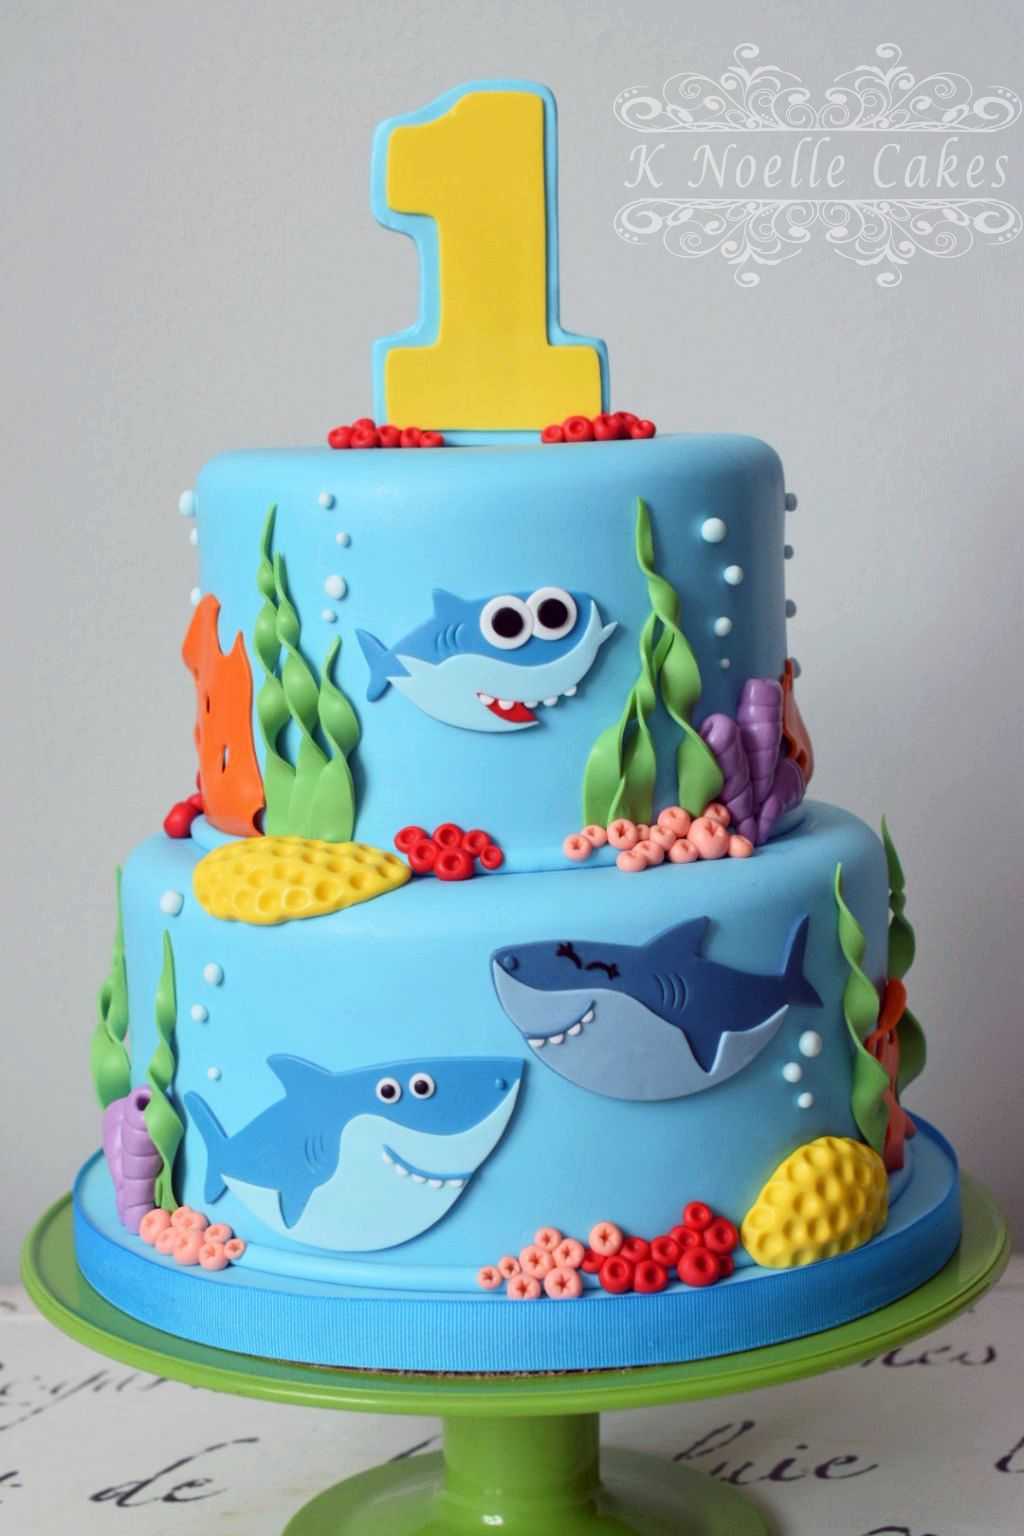 Baby Shark Cake By K Noelle Cakes With Images Boy Birthday